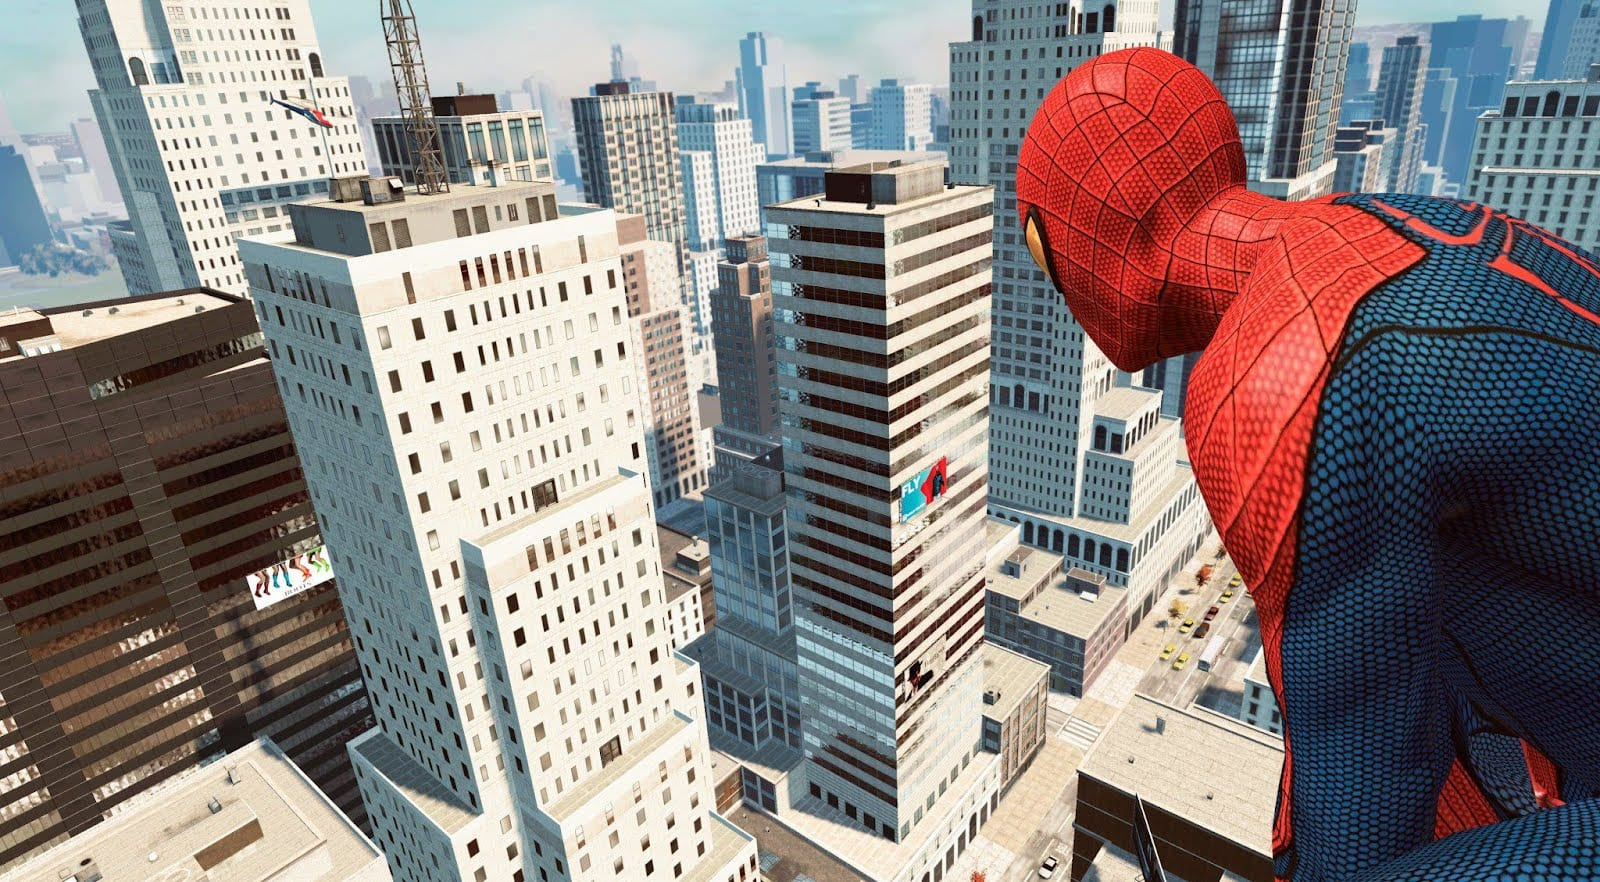 the-amazing-spider-man-game-city-01-27-12-1